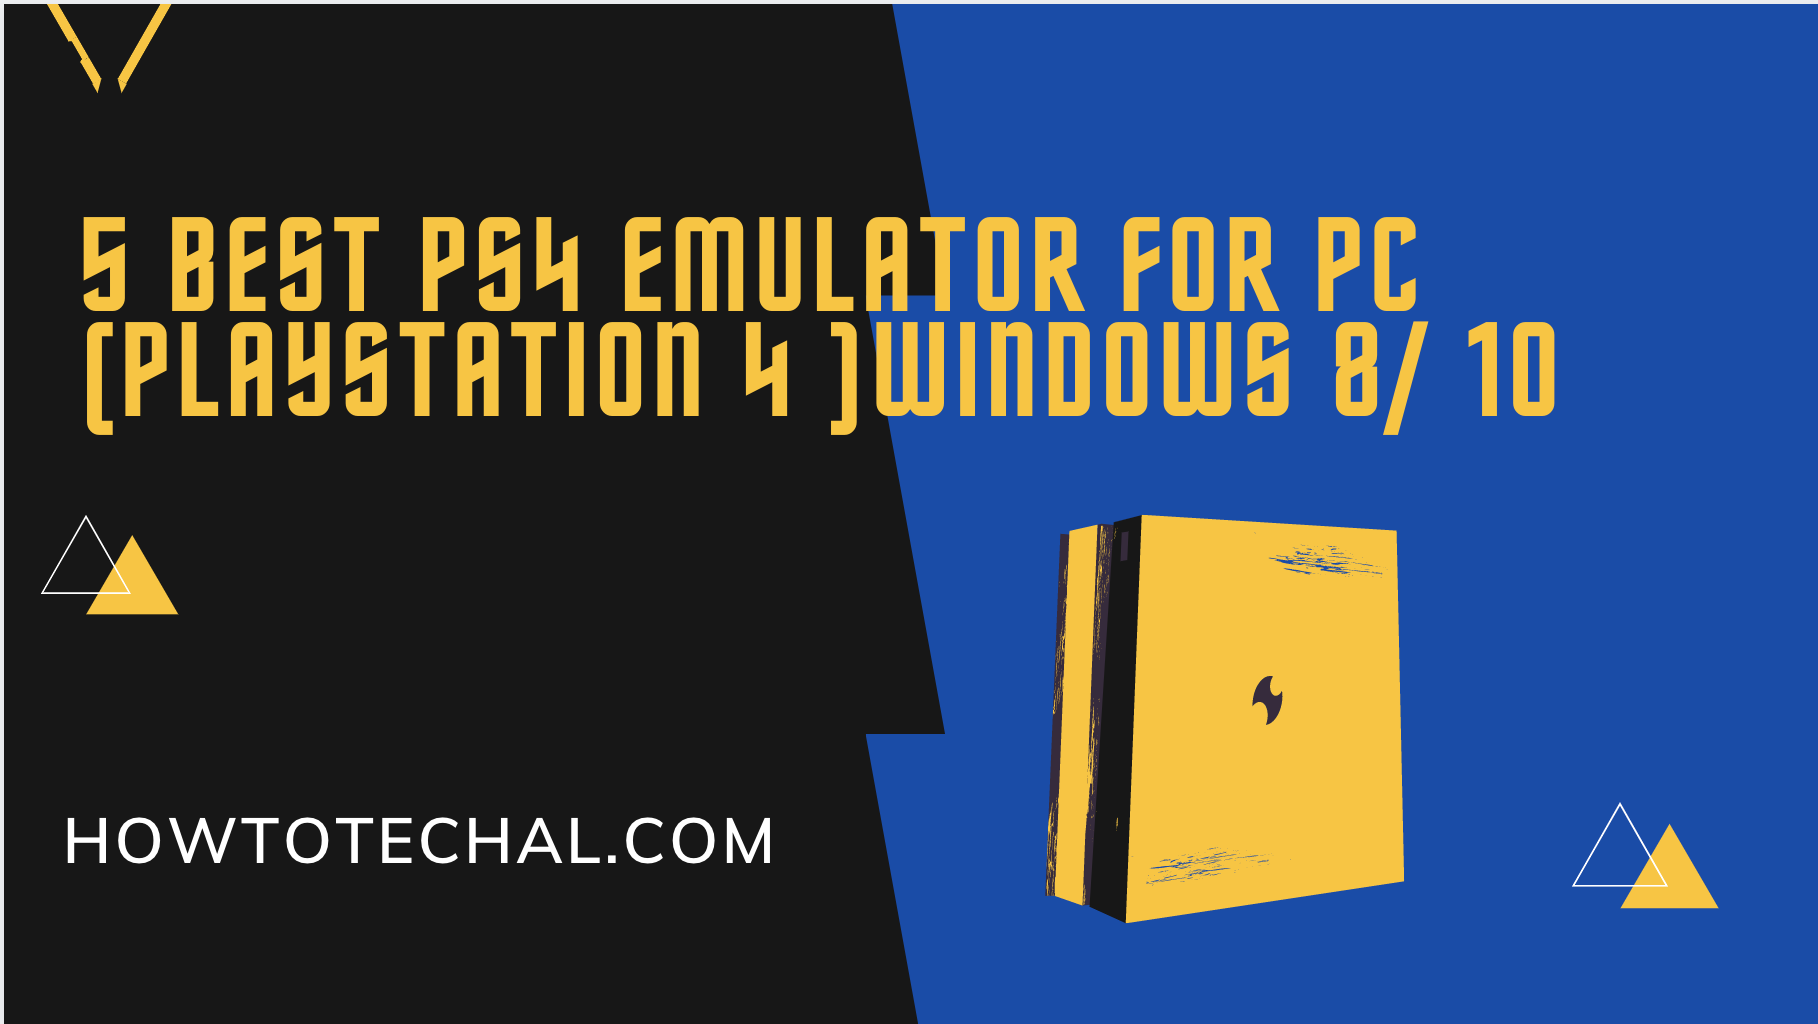 5 Best PS4 Emulator for PC (Playstation 4 )Windows 8/ 10